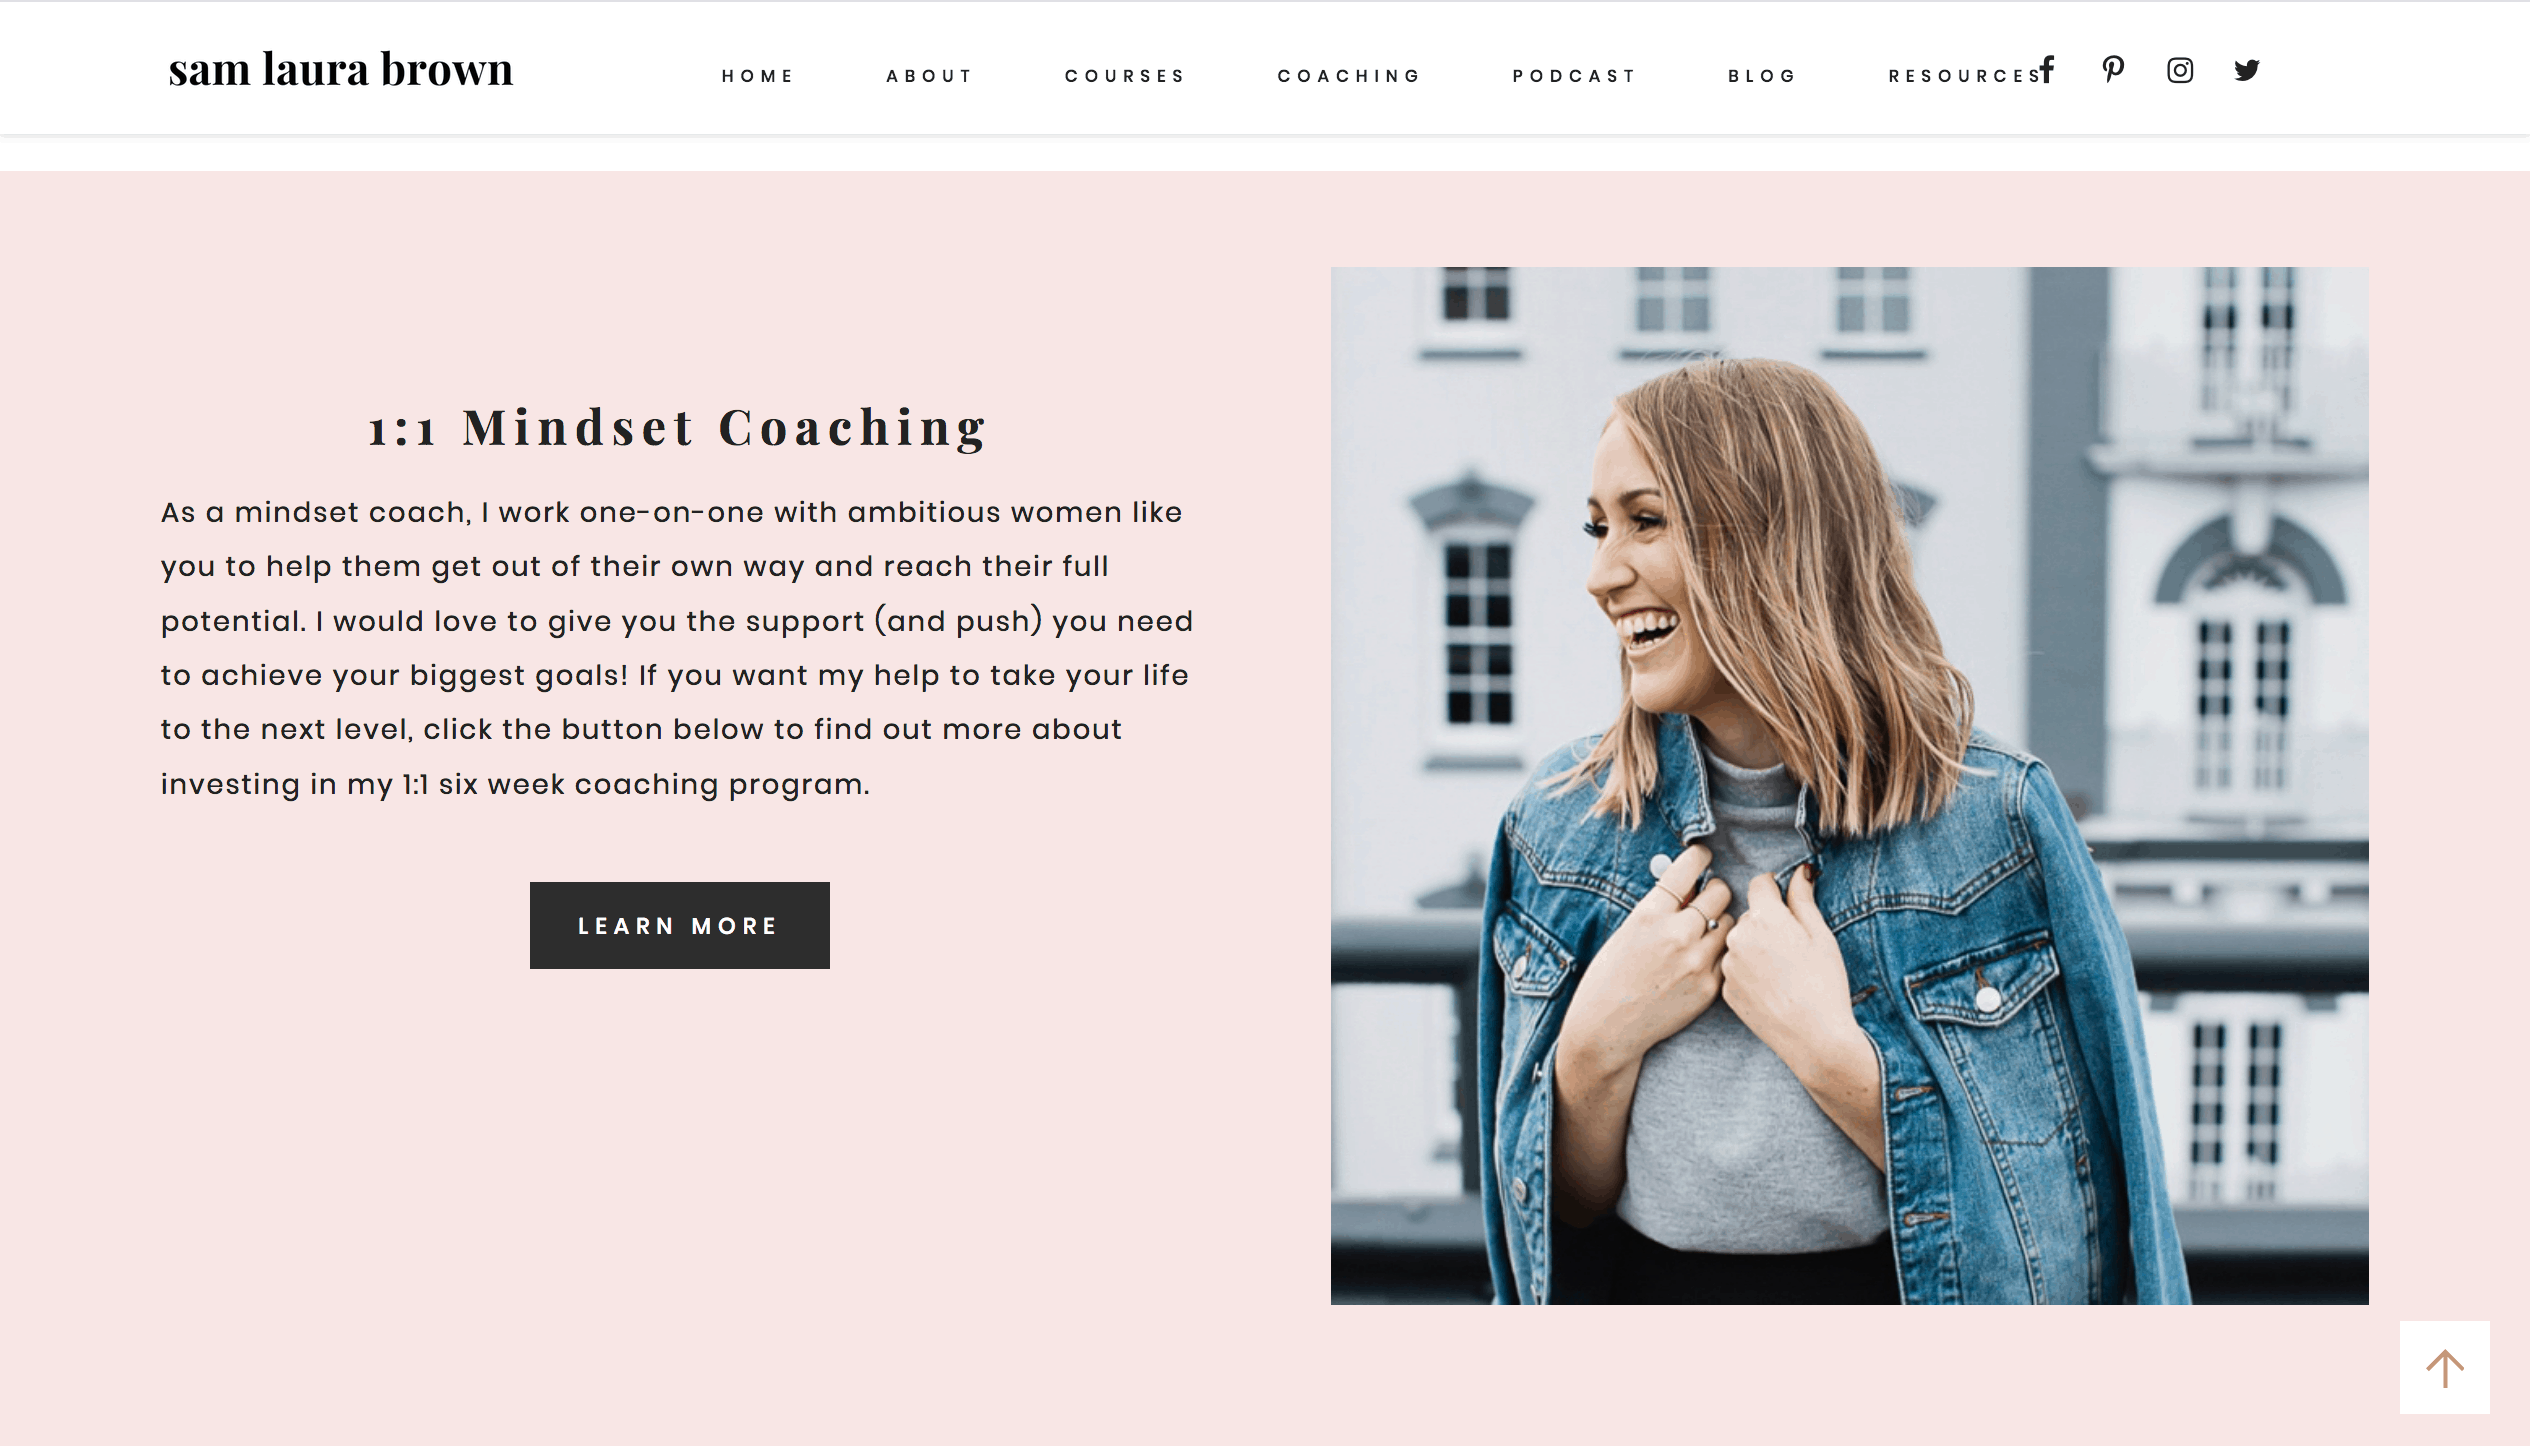 Sam Brown owns a personal growth blog and she earns an income by offering private coaching and selling online courses.